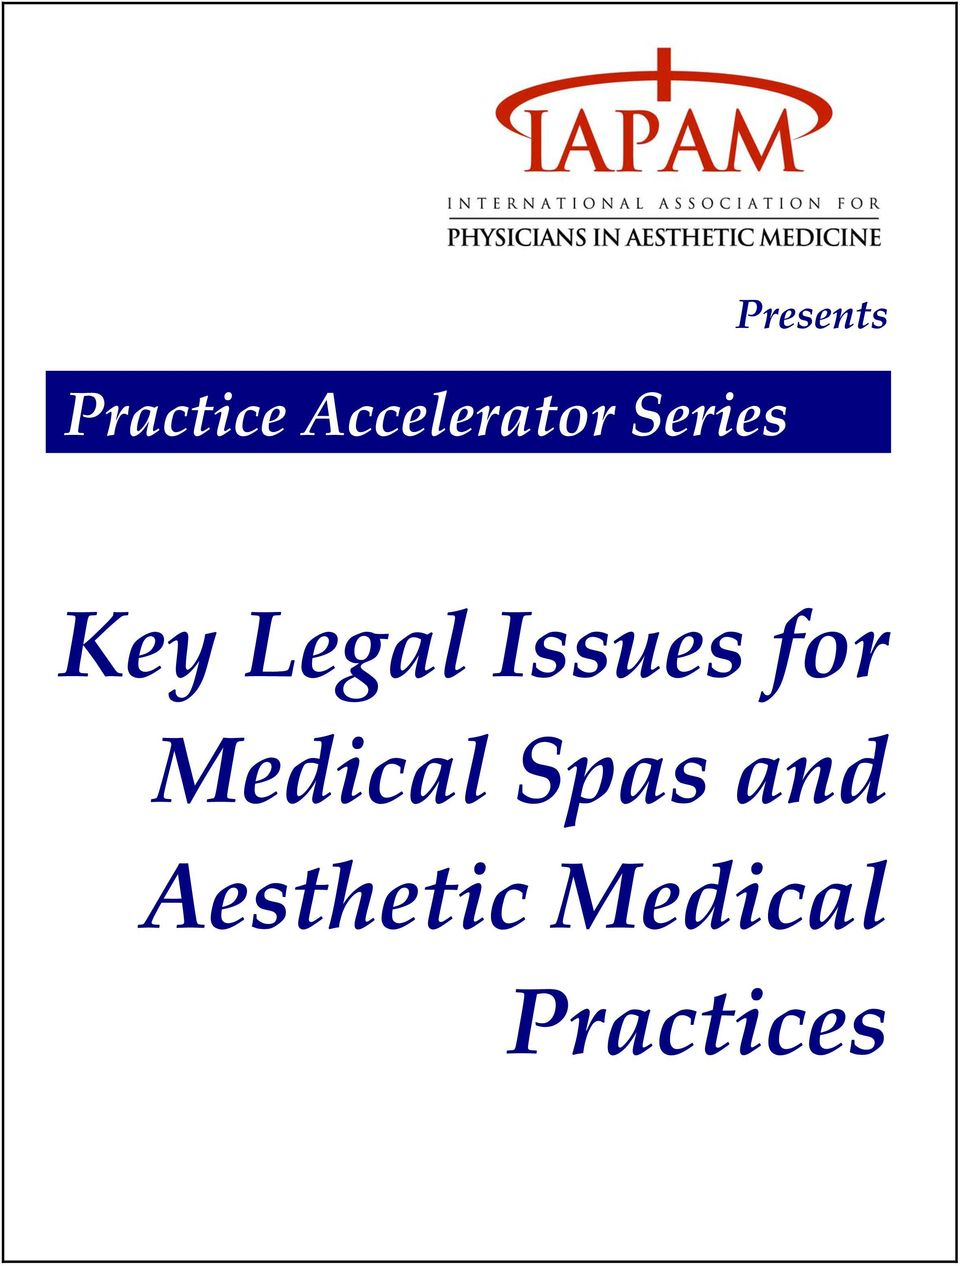 Issues for Medical Spas